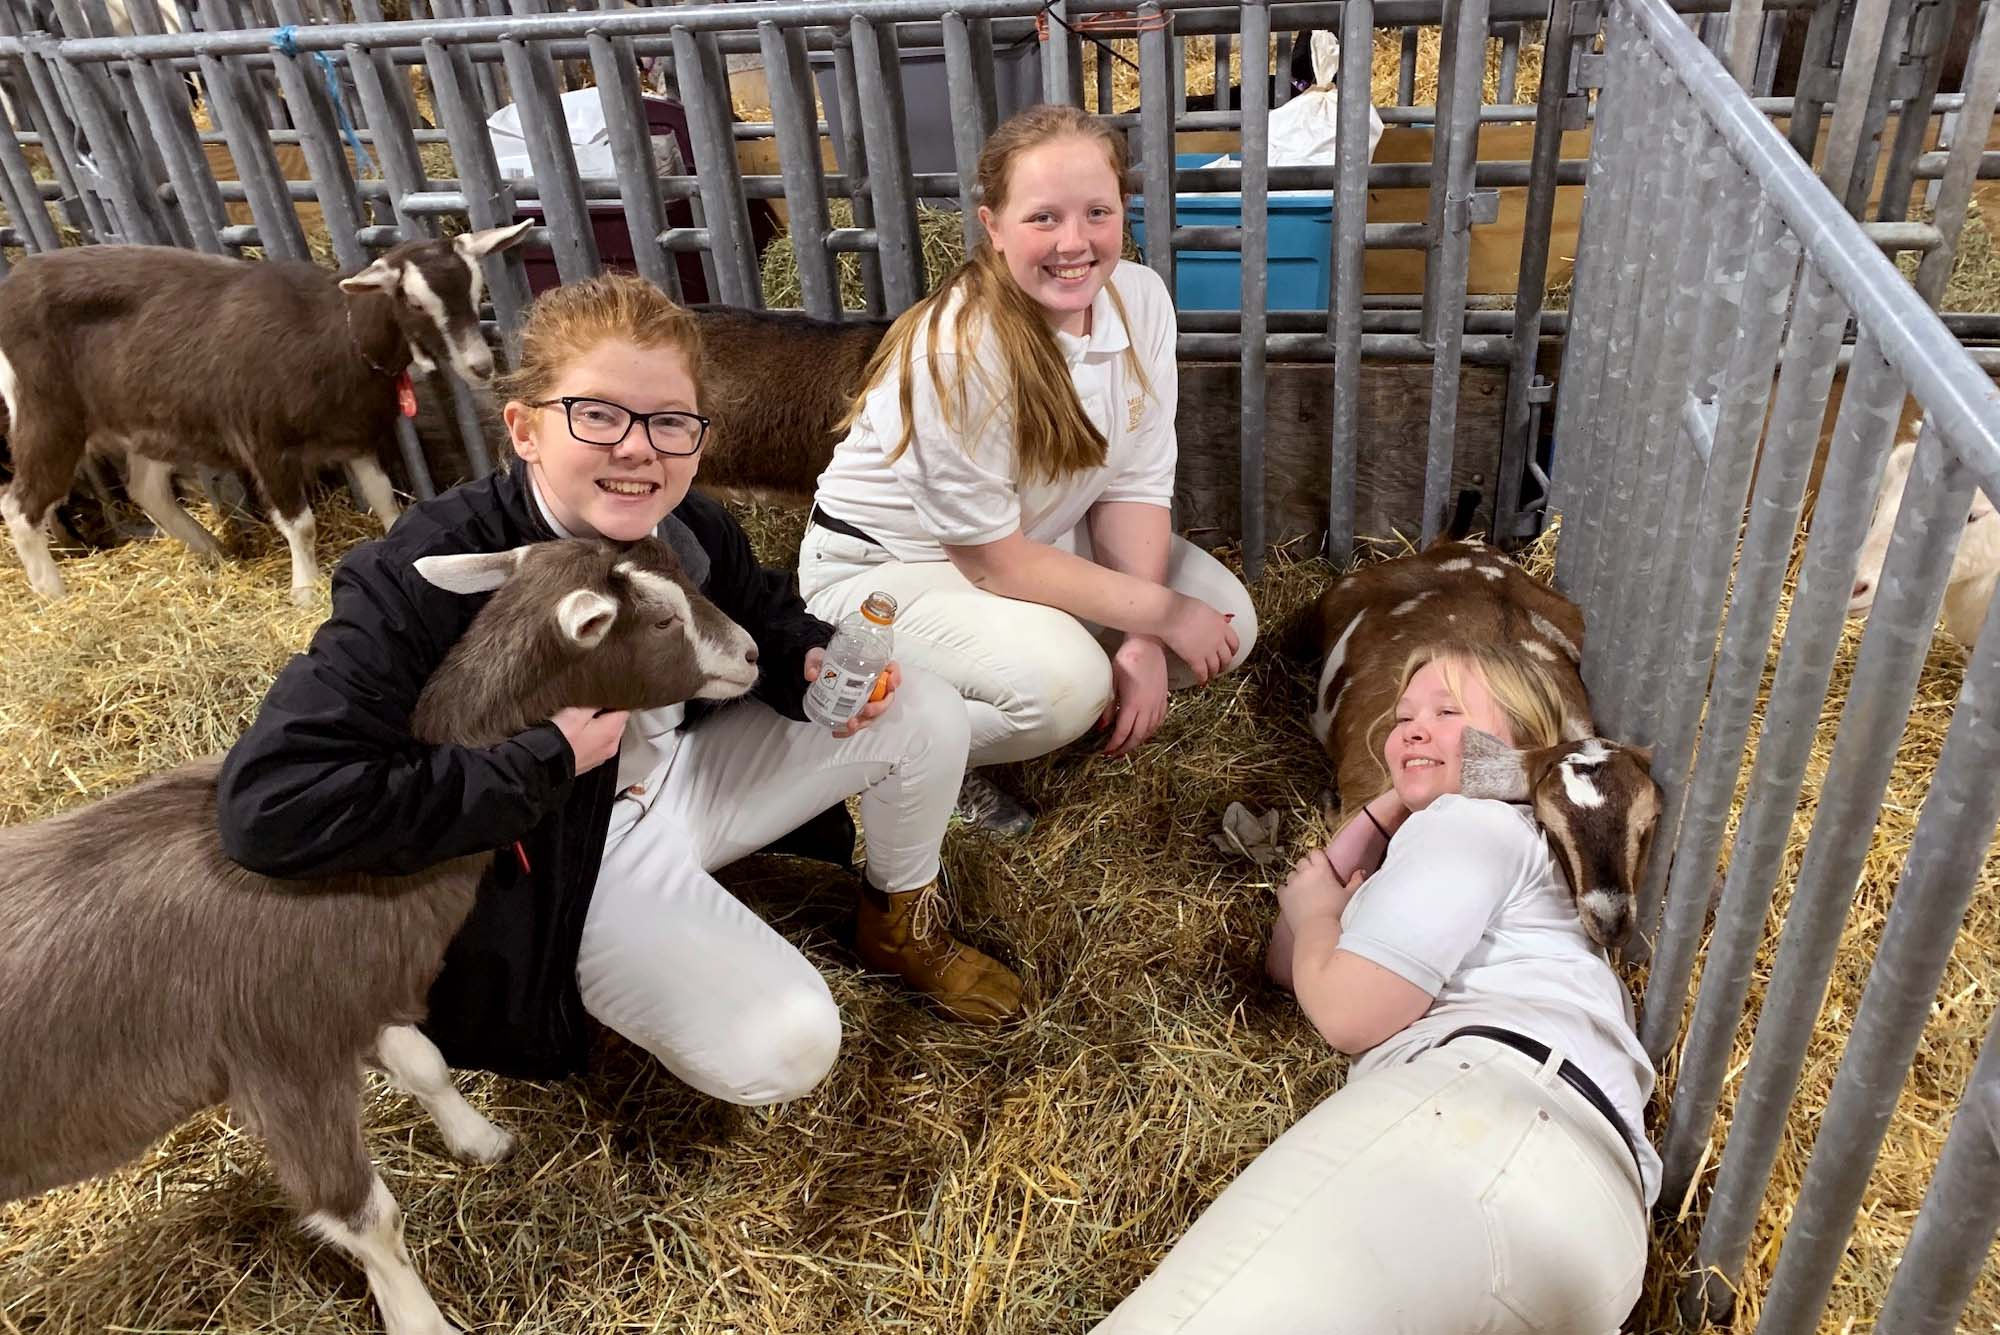 Milton Hershey School Agricultural and Environmental Education students take a break with their goats during the PA Farm Show.